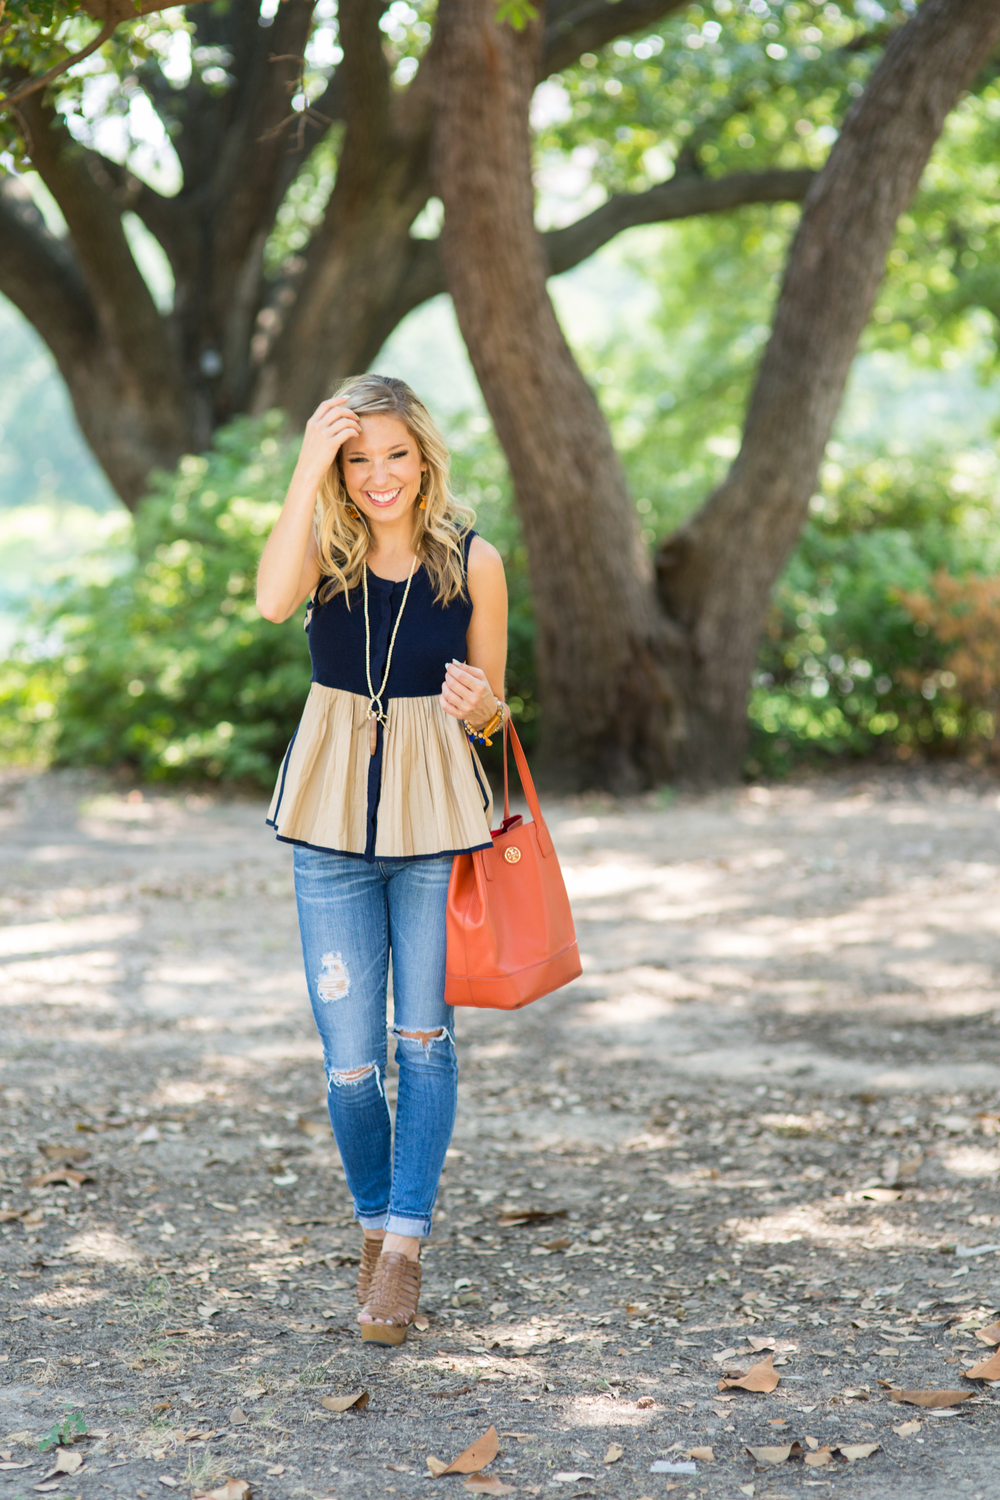 Antropologie Ripped Skinny Jeans & Tassel Necklace